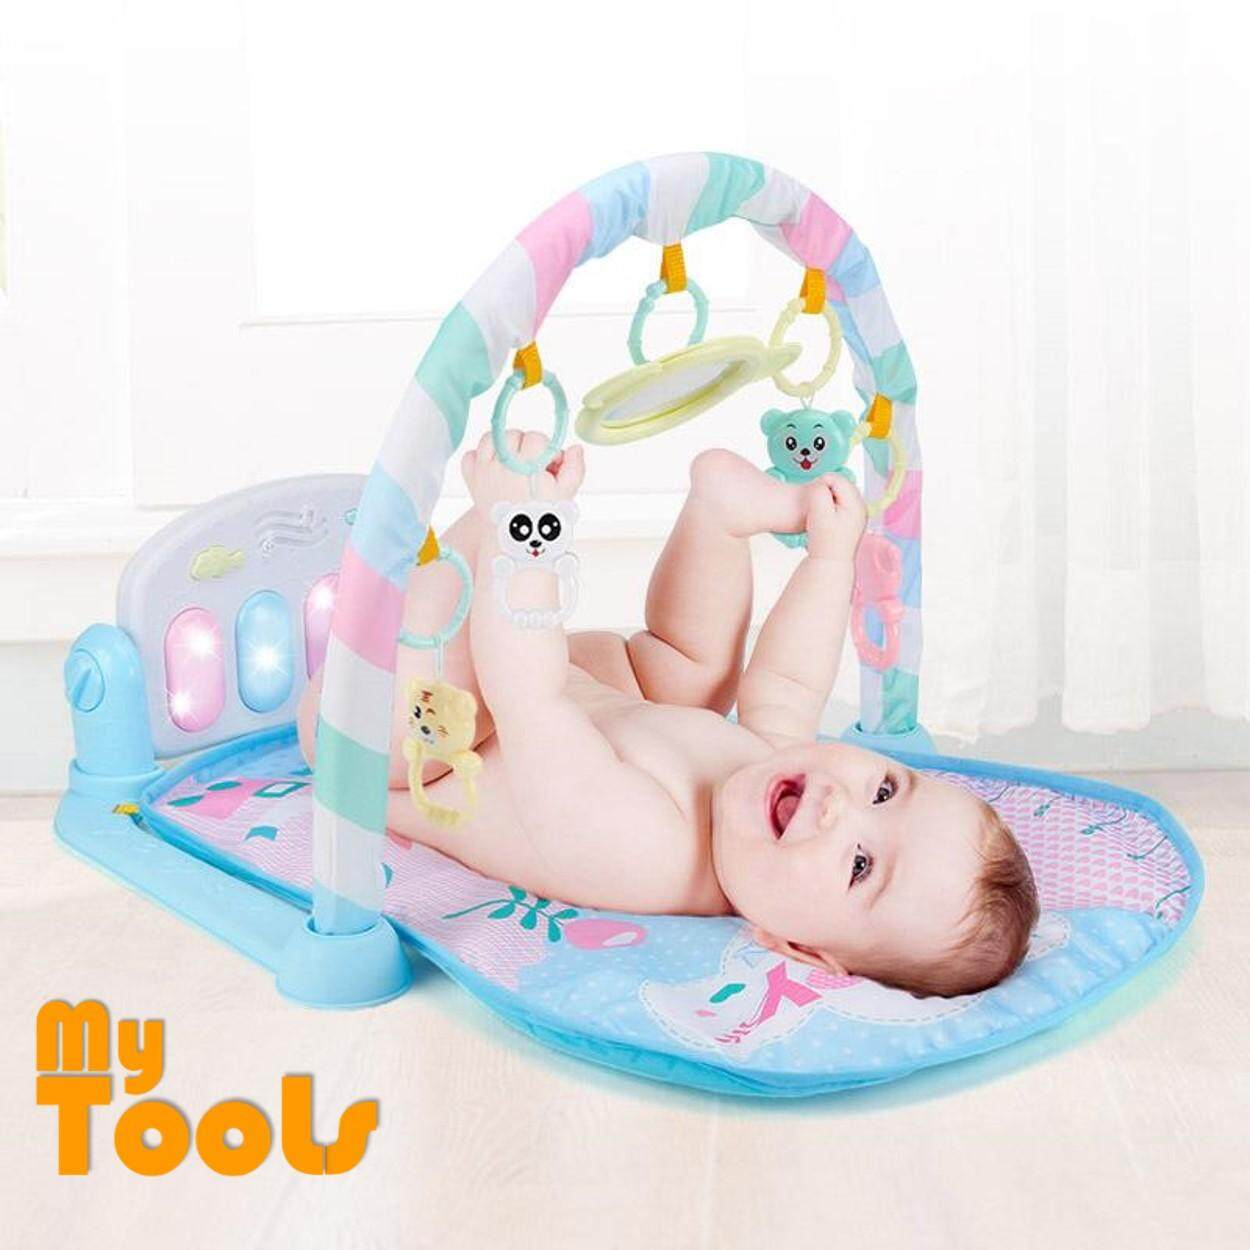 Mytools Baby Play Mat Care Toys Colourful Musical Gym Playing Lay Sit Carpet By Mytools Marketing.